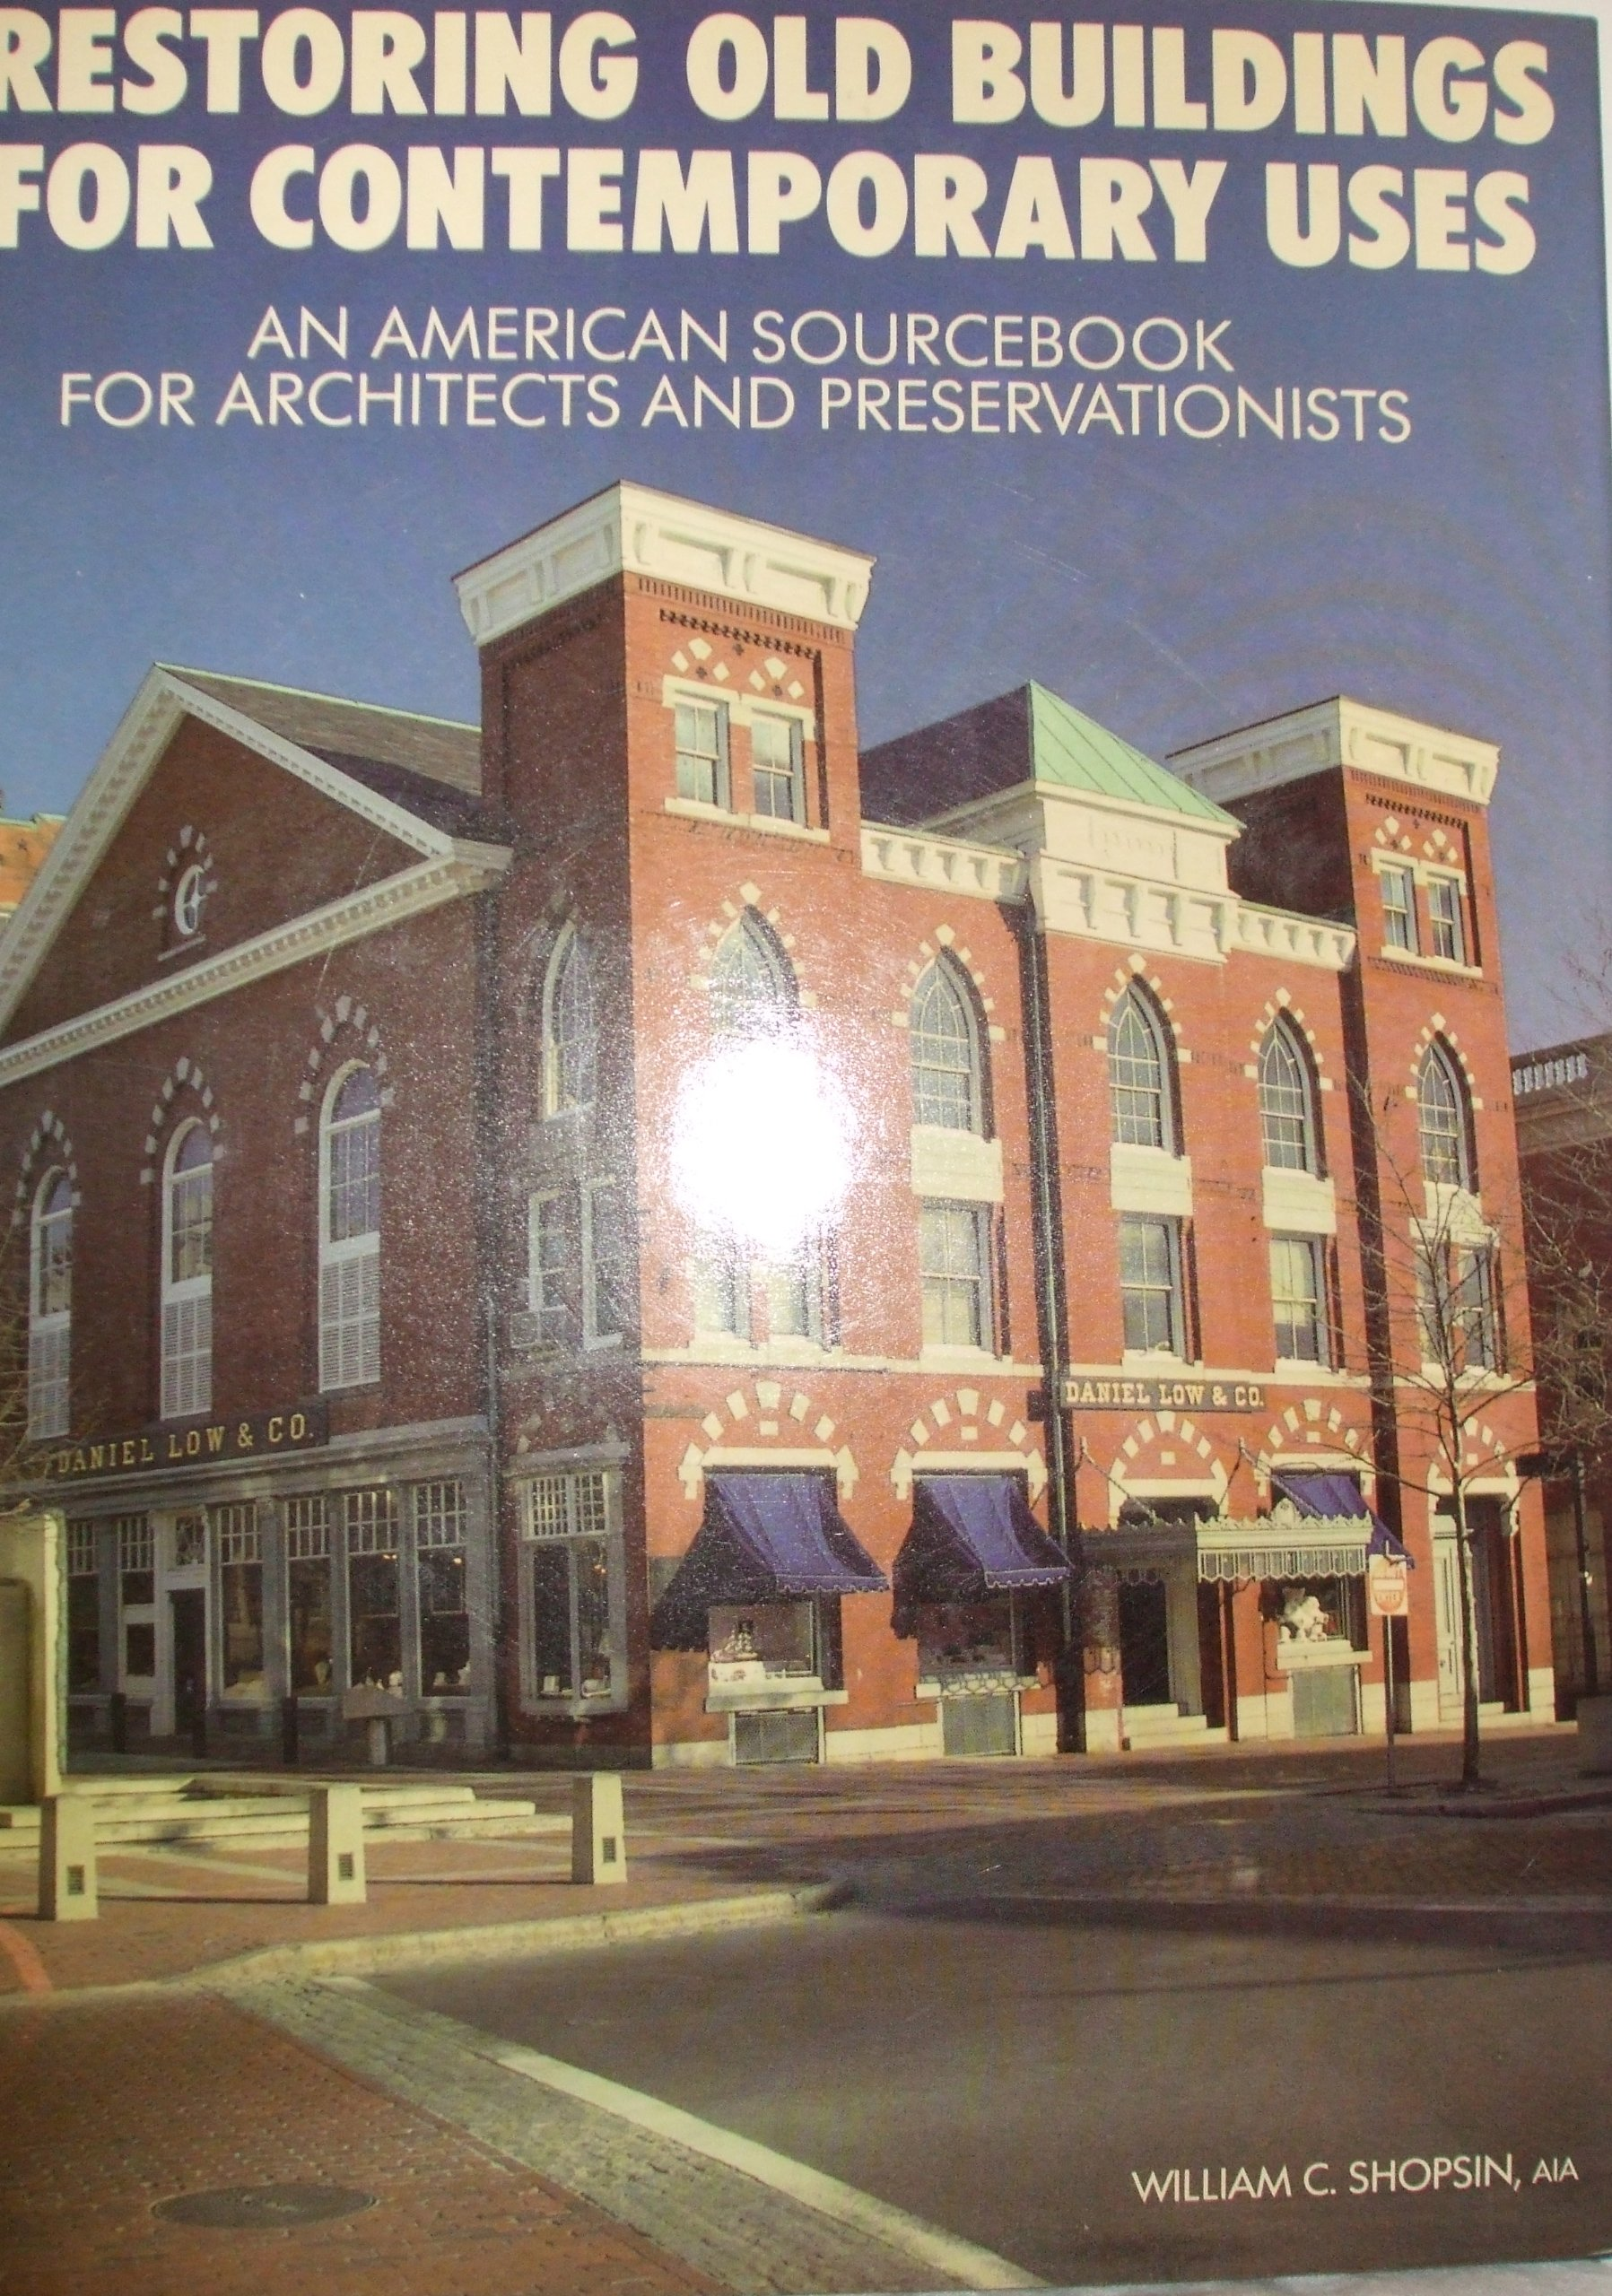 Restoring Old Buildings for Contemporary Uses: An American Sourcebook for Architects and Preservationists